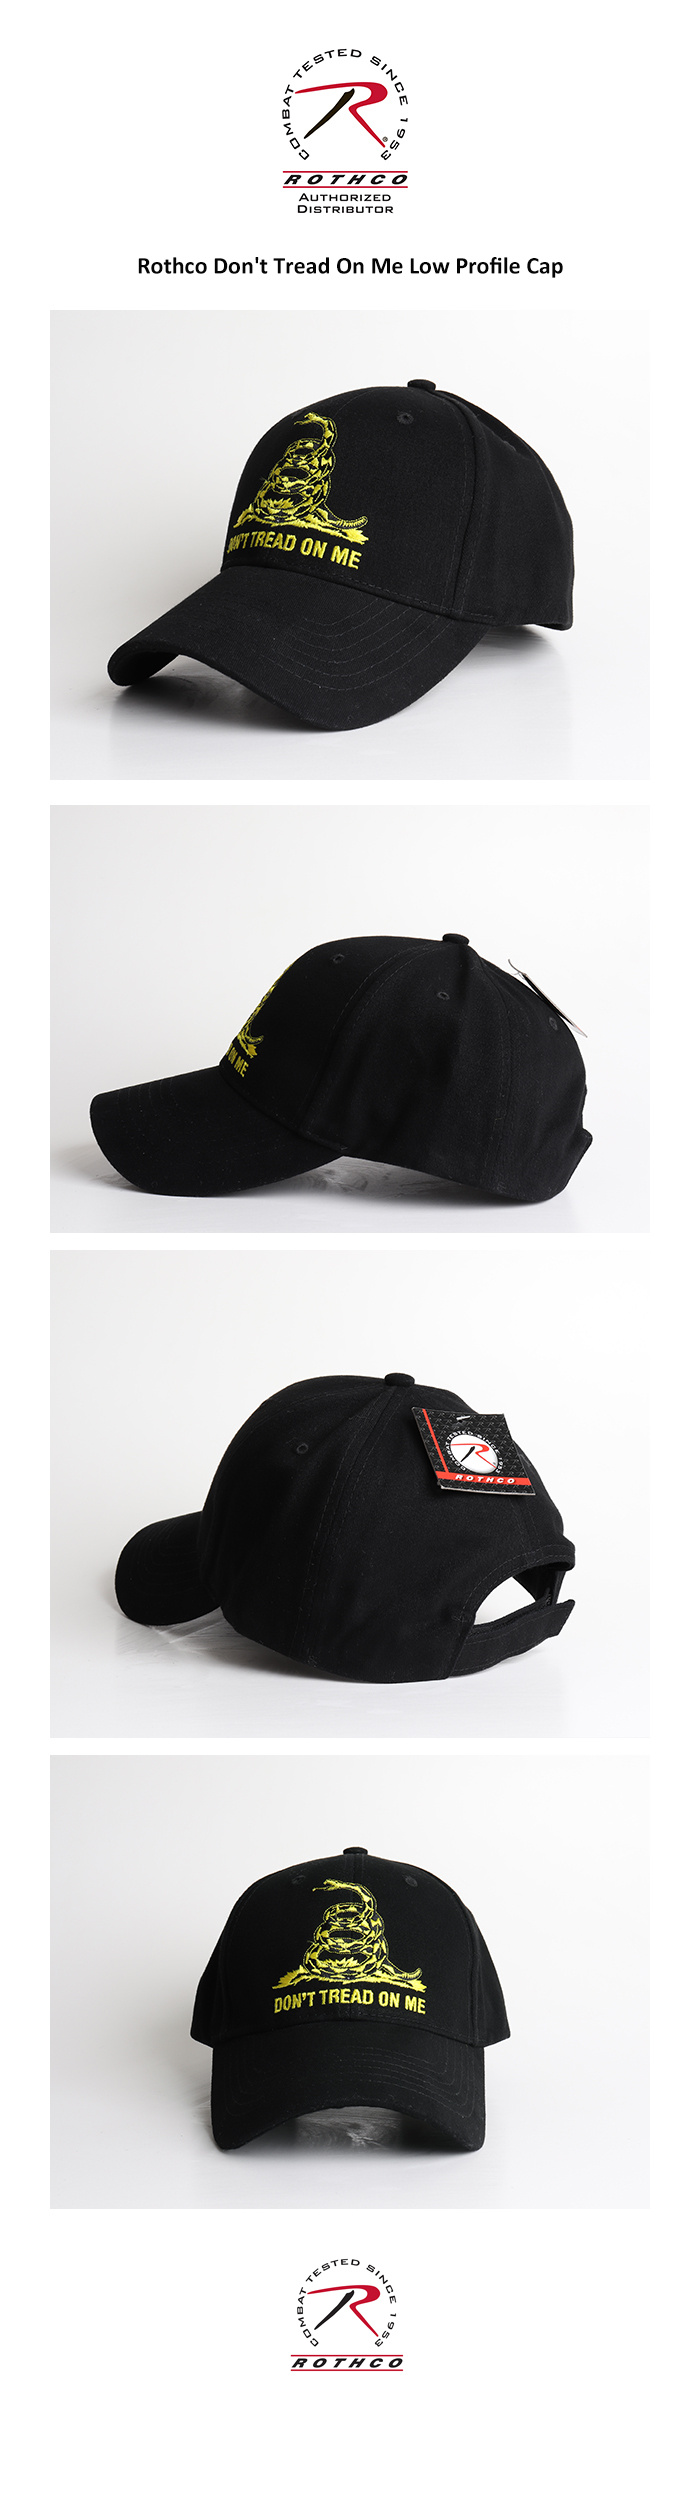 로스코(ROTHCO) [국내배송]  Dont Tread On Me Low Profile Cap